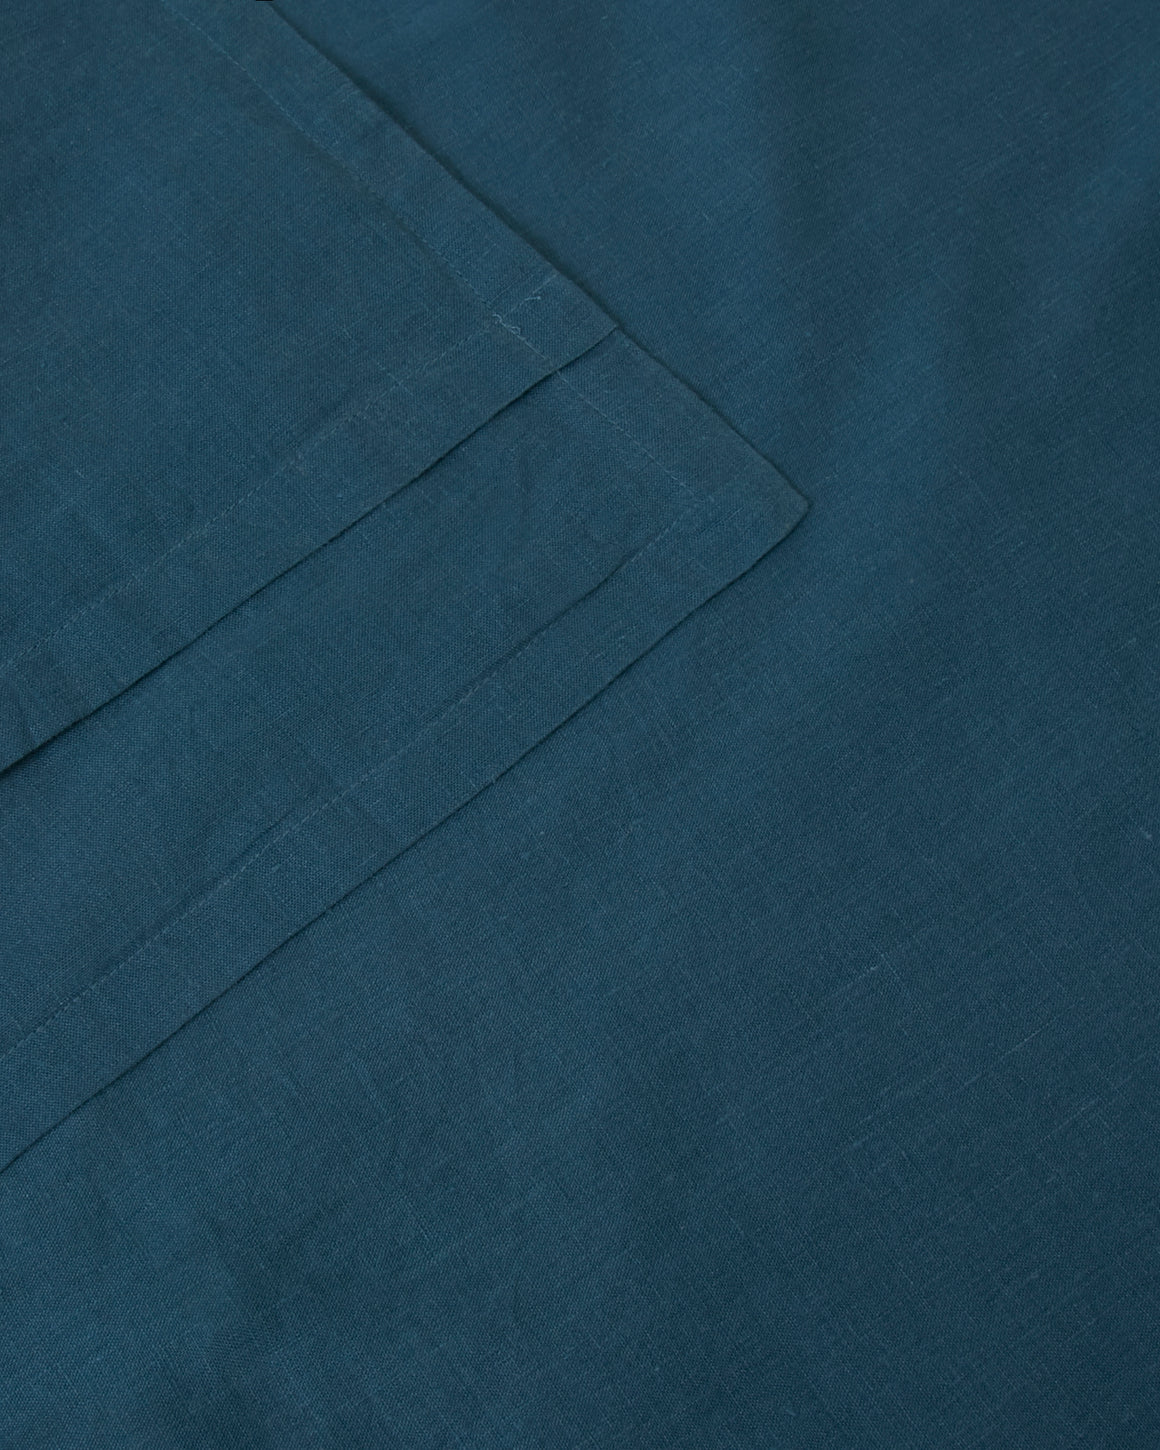 Pair of filled pillowcases in dark blue adriatic